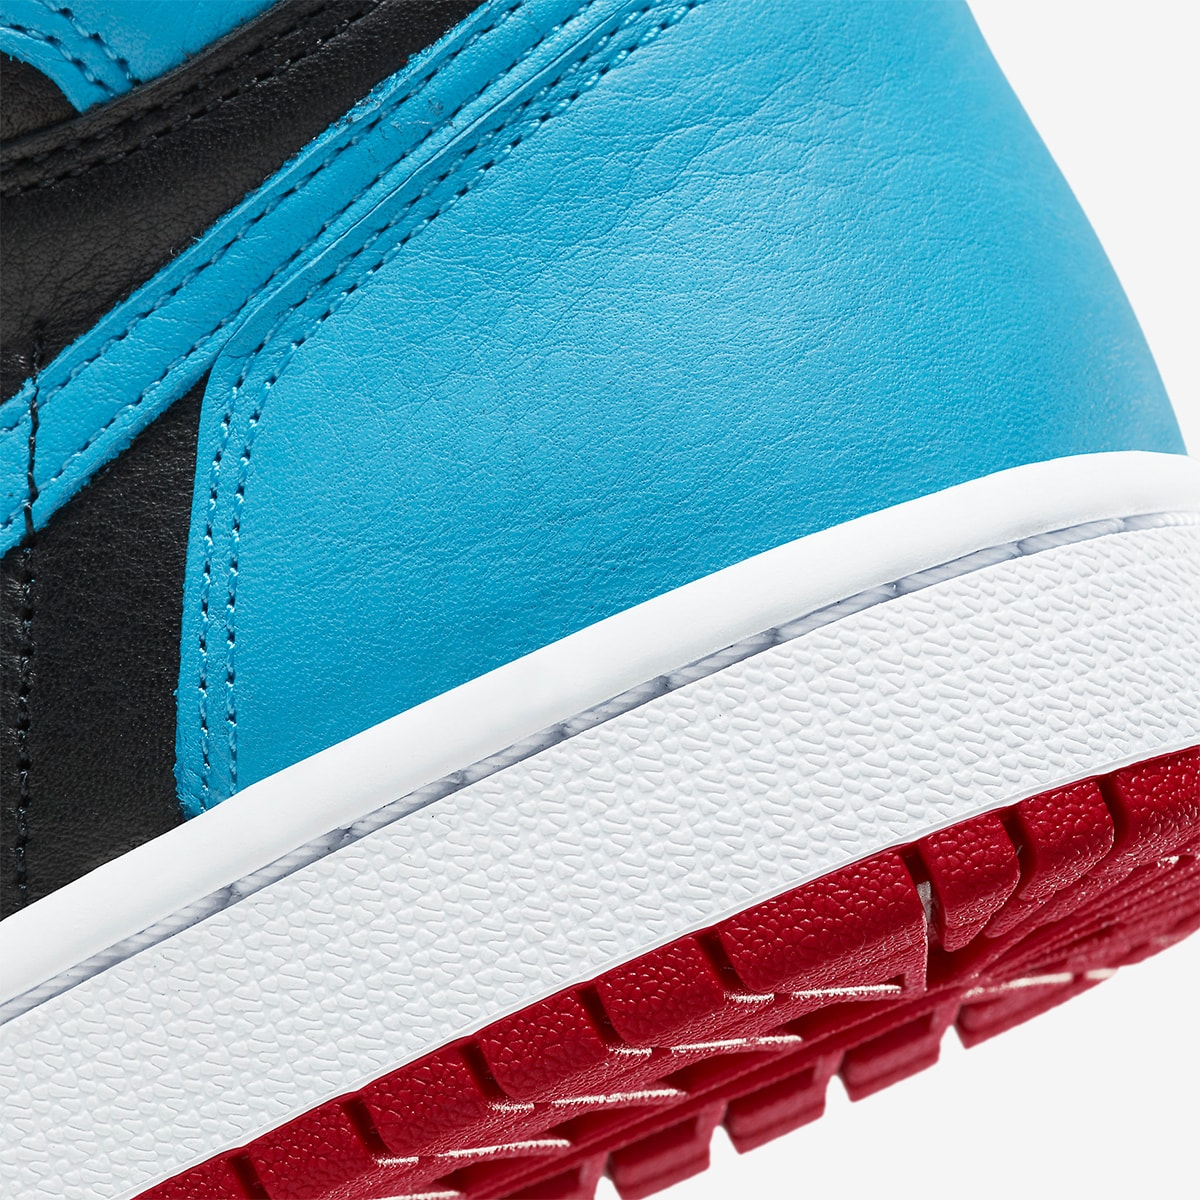 Where To Buy The Air Jordan 1 Unc To Chi House Of Heat